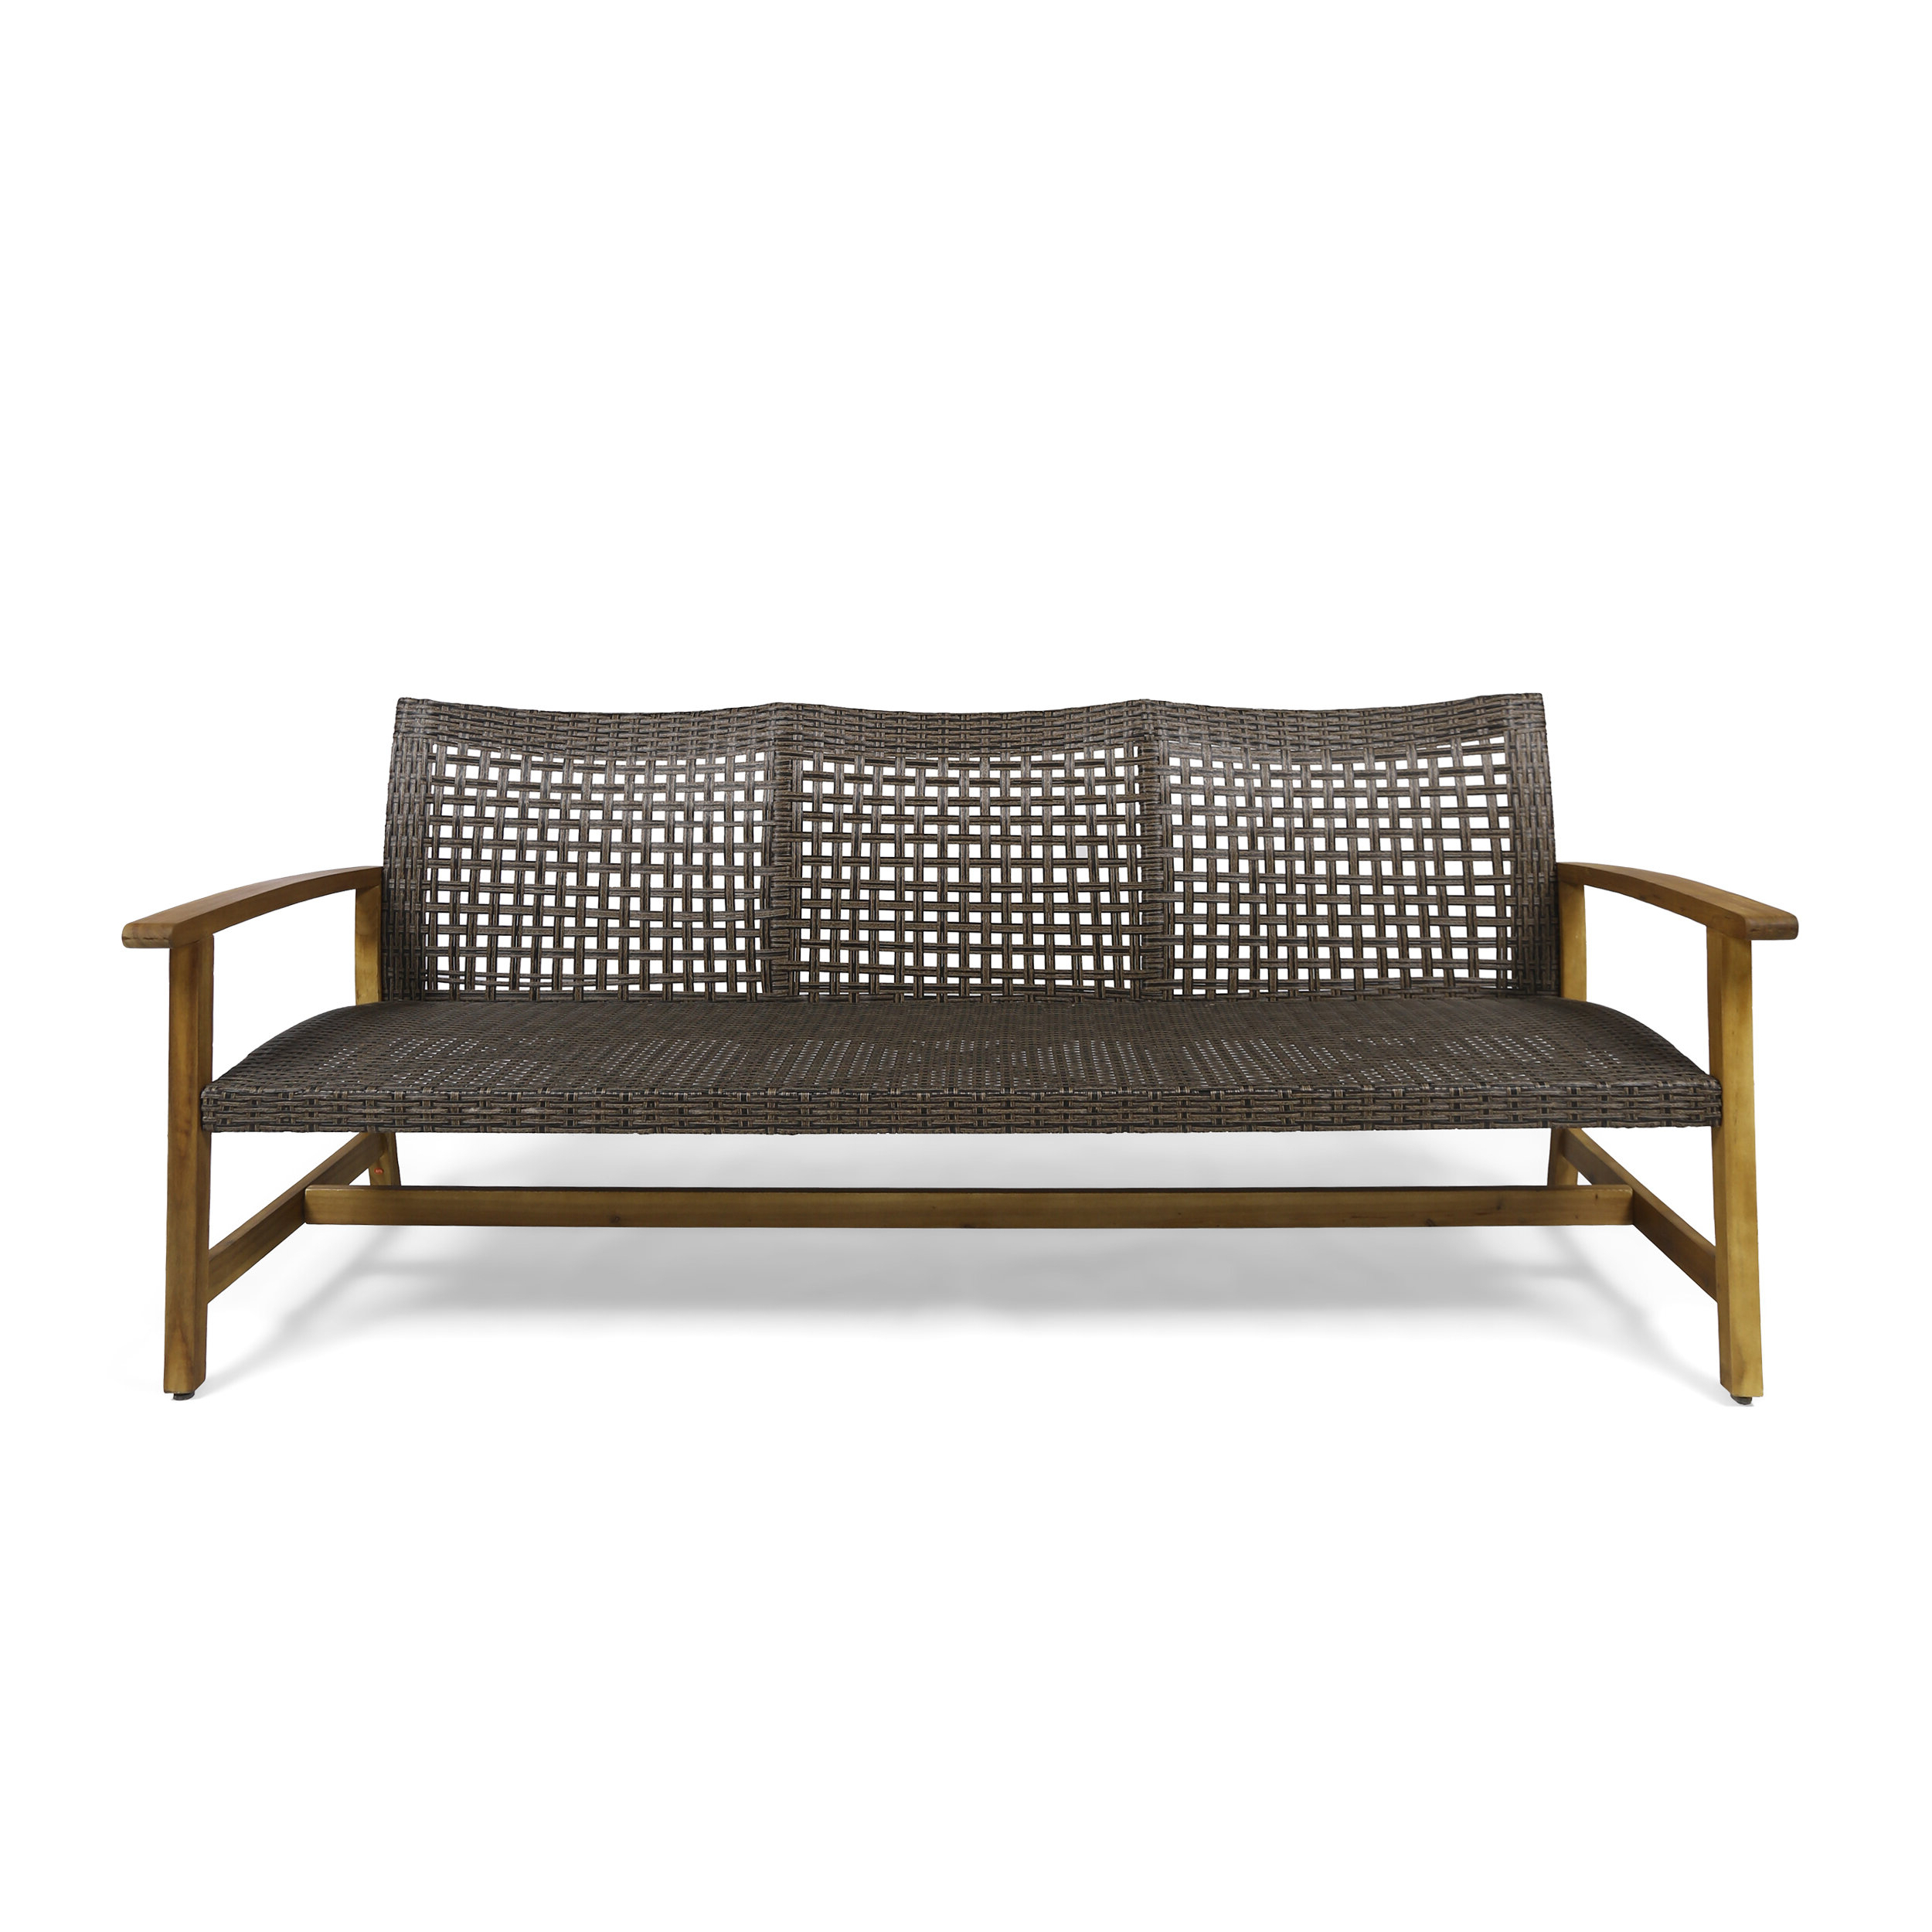 Most Recent Clemens Patio Sofas Within Bungalow Rose Clemens Patio Sofa (View 8 of 25)